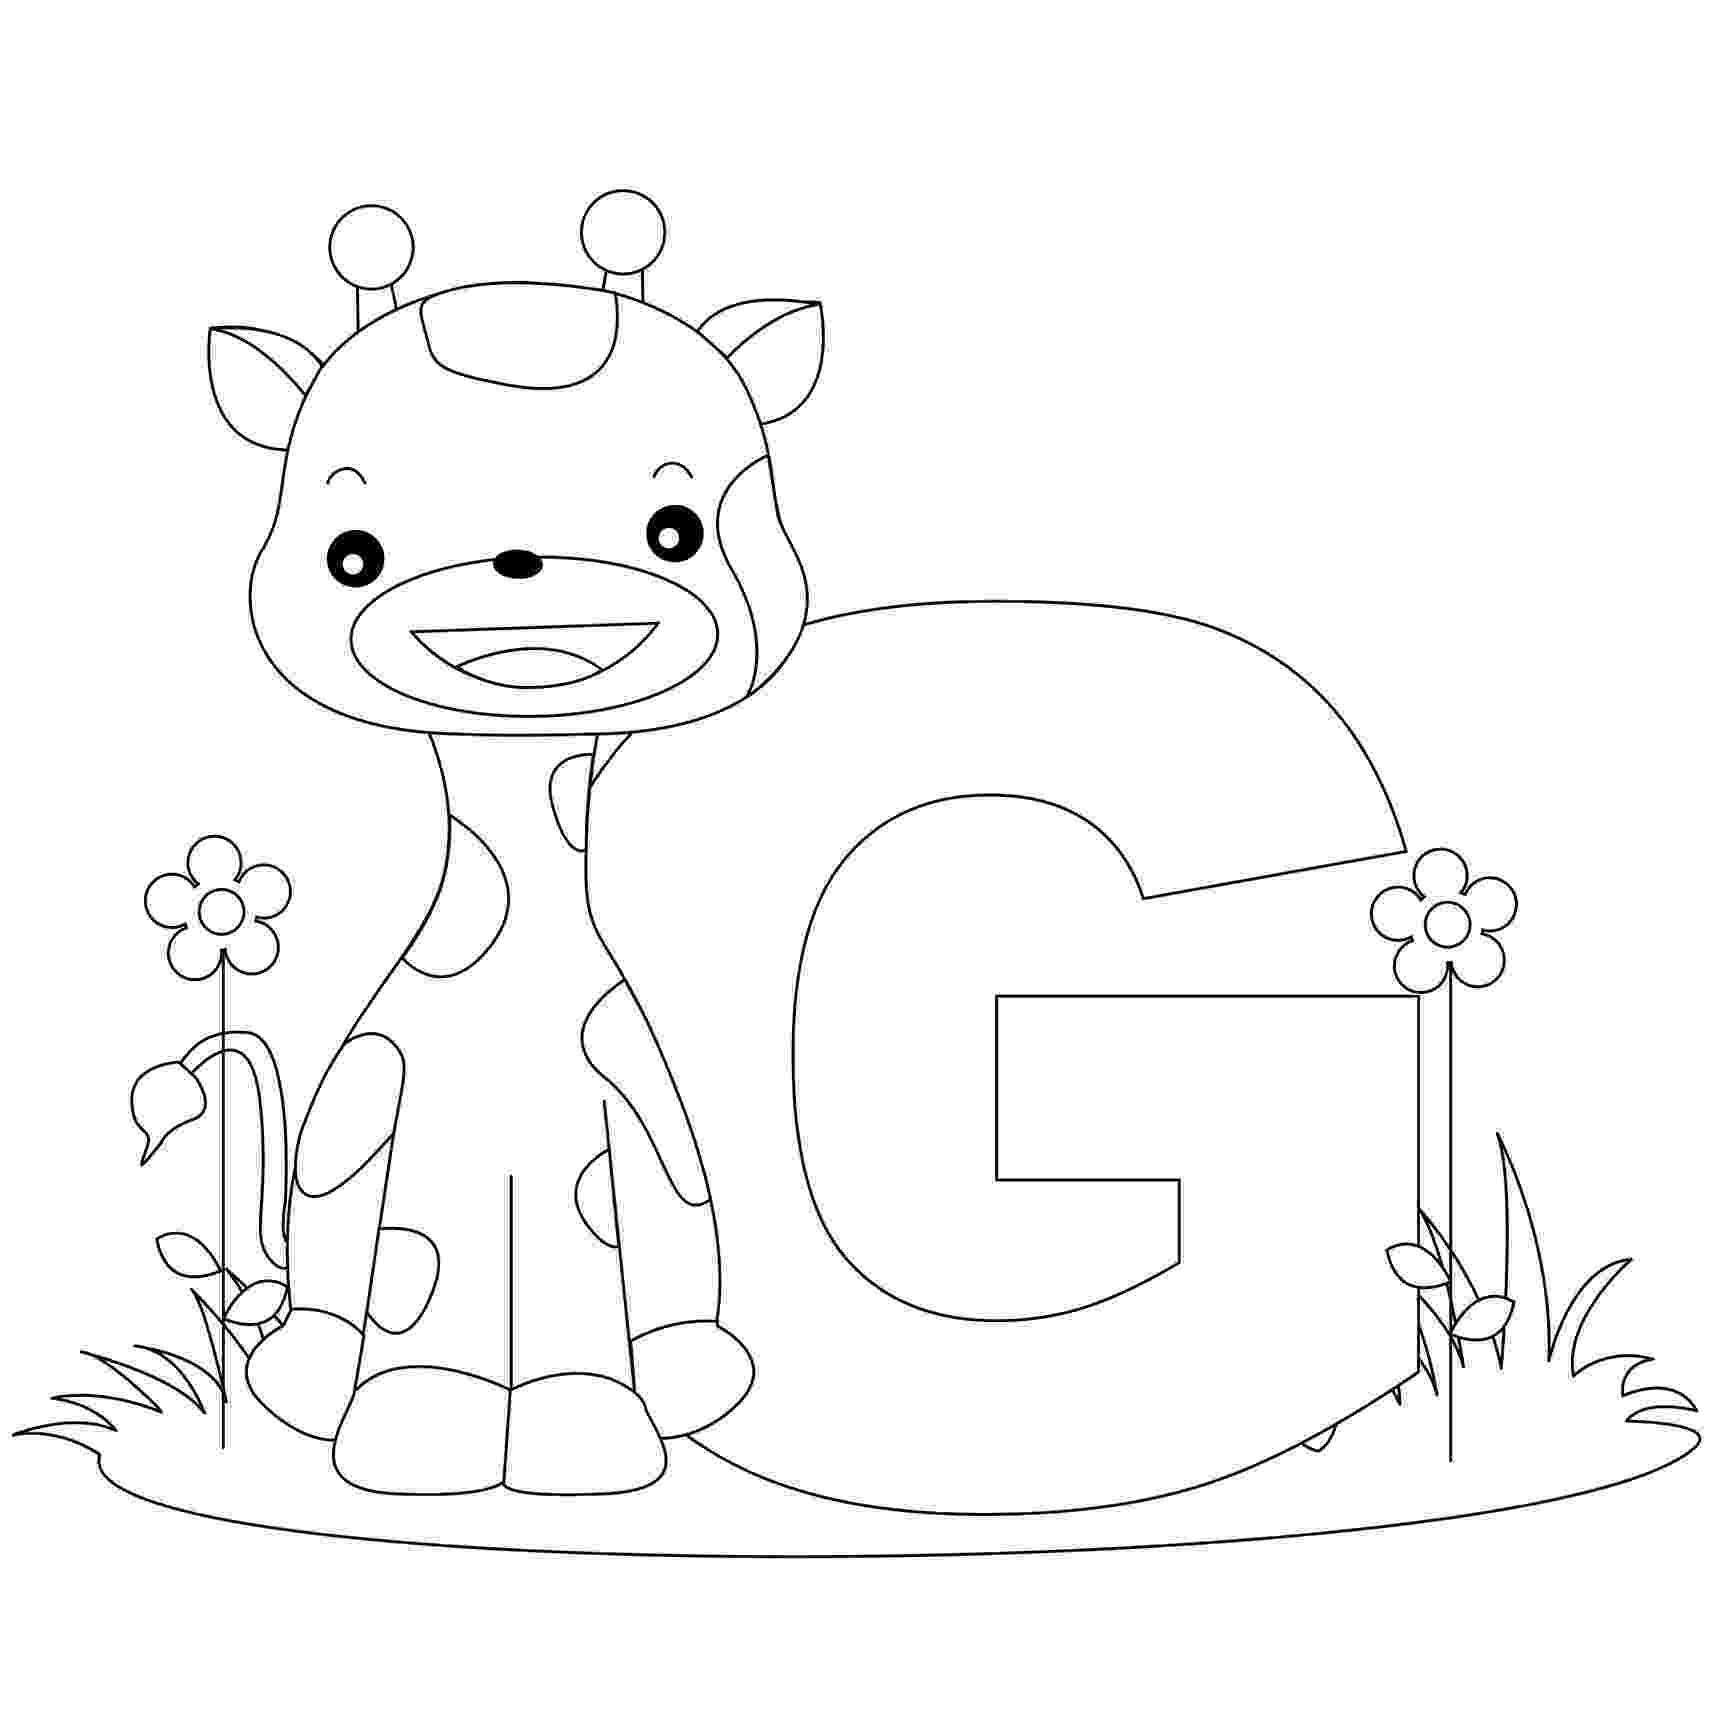 childrens colouring pages alphabet free printable alphabet coloring pages for kids 123 kids alphabet colouring childrens pages